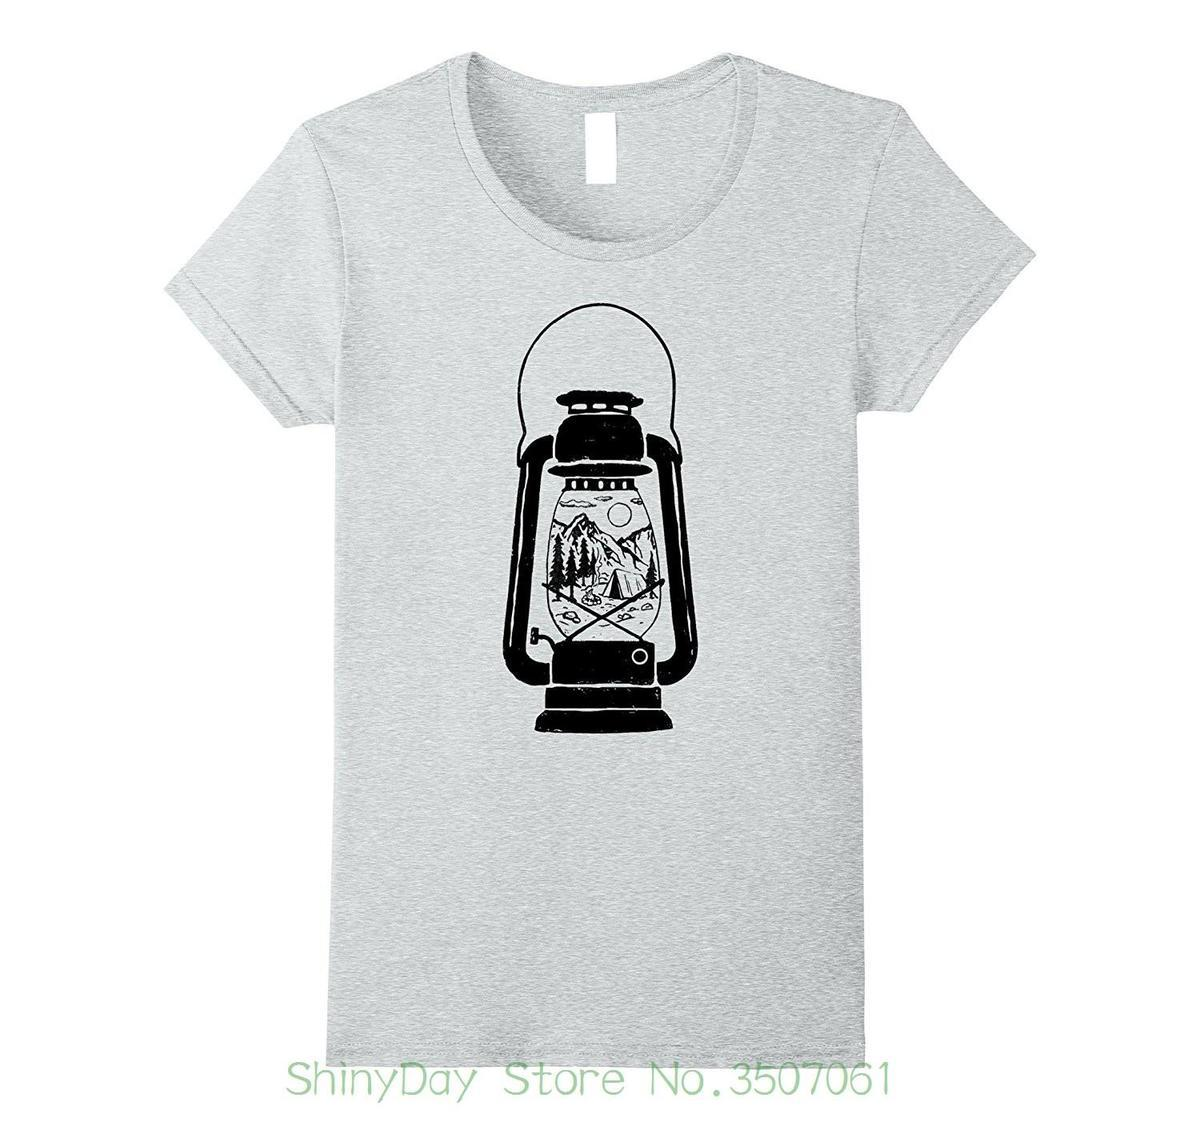 83c9474fb065 Cotton T Shirt Fashion Campings Lantern Great Outdoors Vintage Graphic T  Shirt Great Tee Shirts Cool Tee Shirt From Lijian57